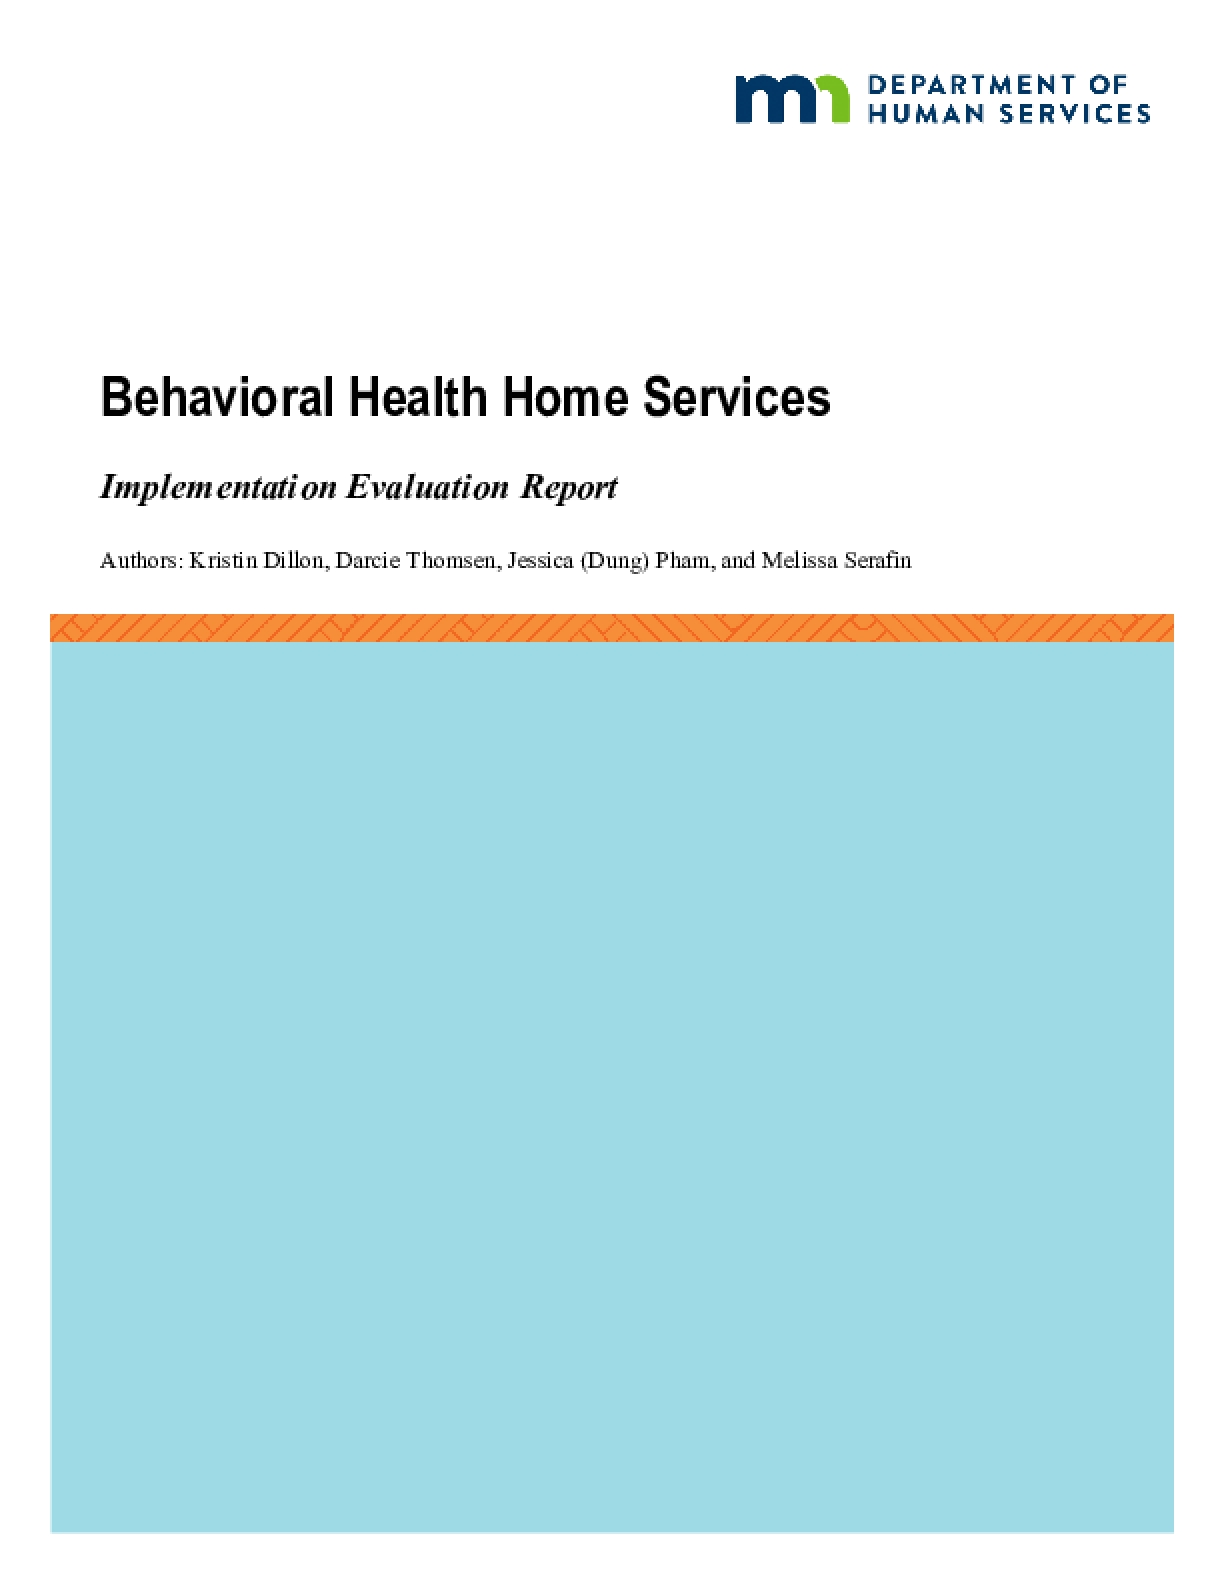 Behavioral Health Home Services: Implementation Evaluation Report